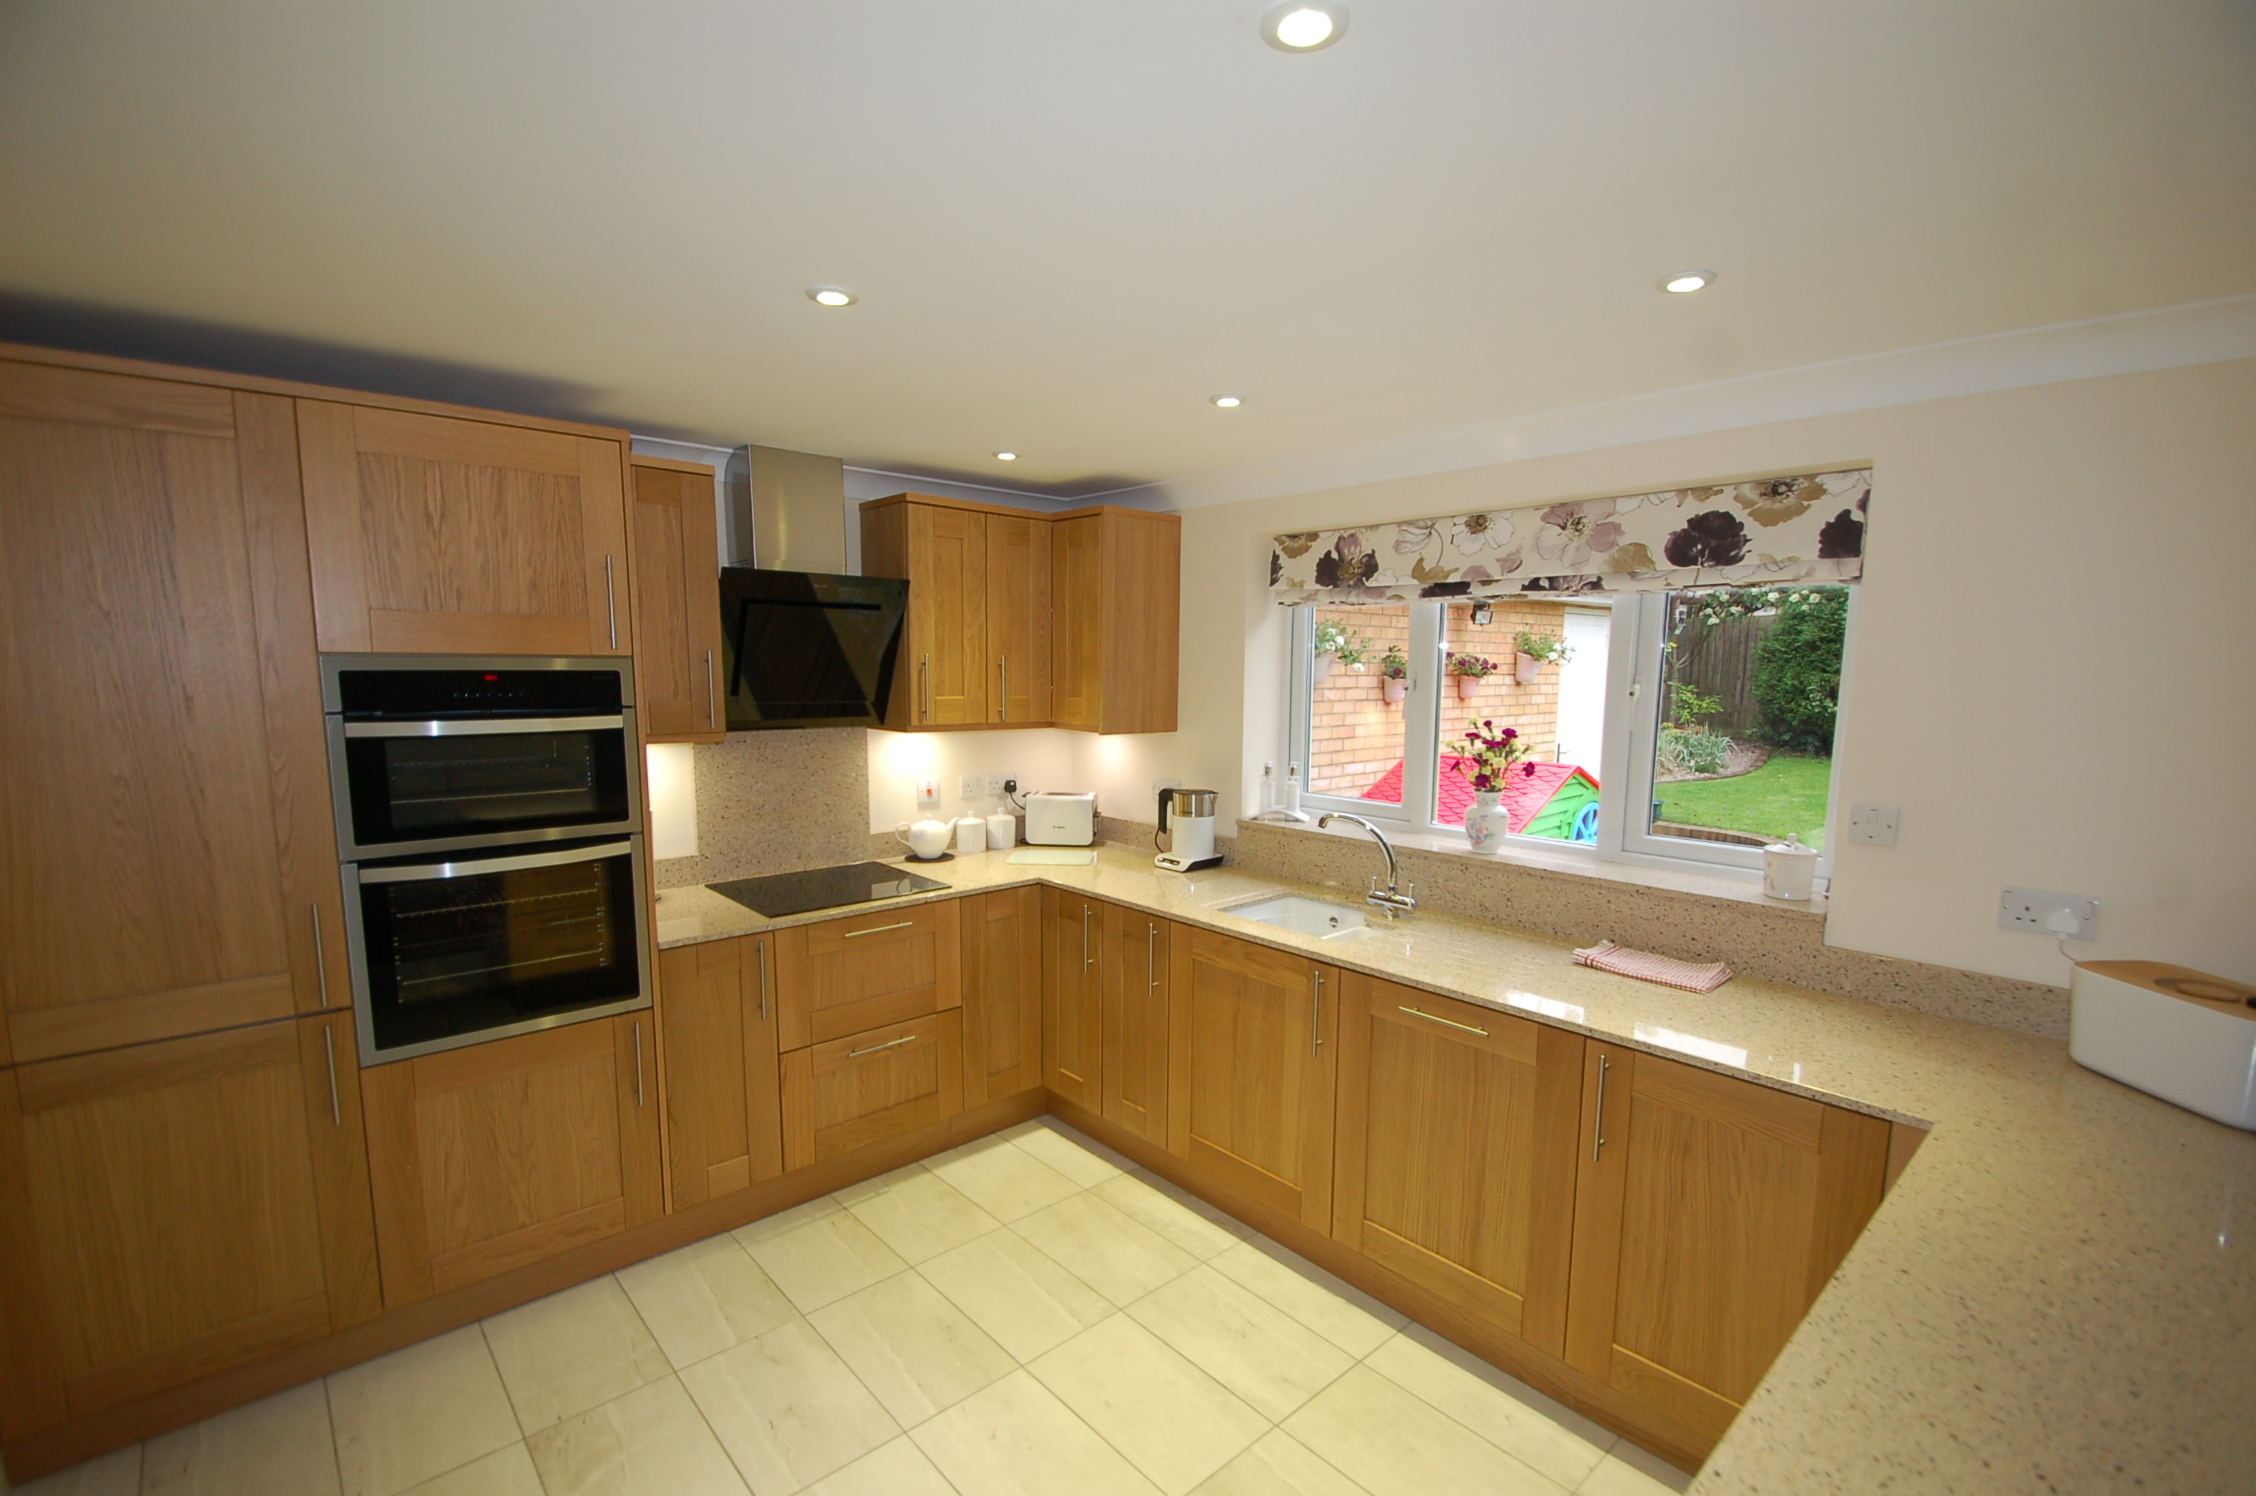 Changing the colour of a kitchen